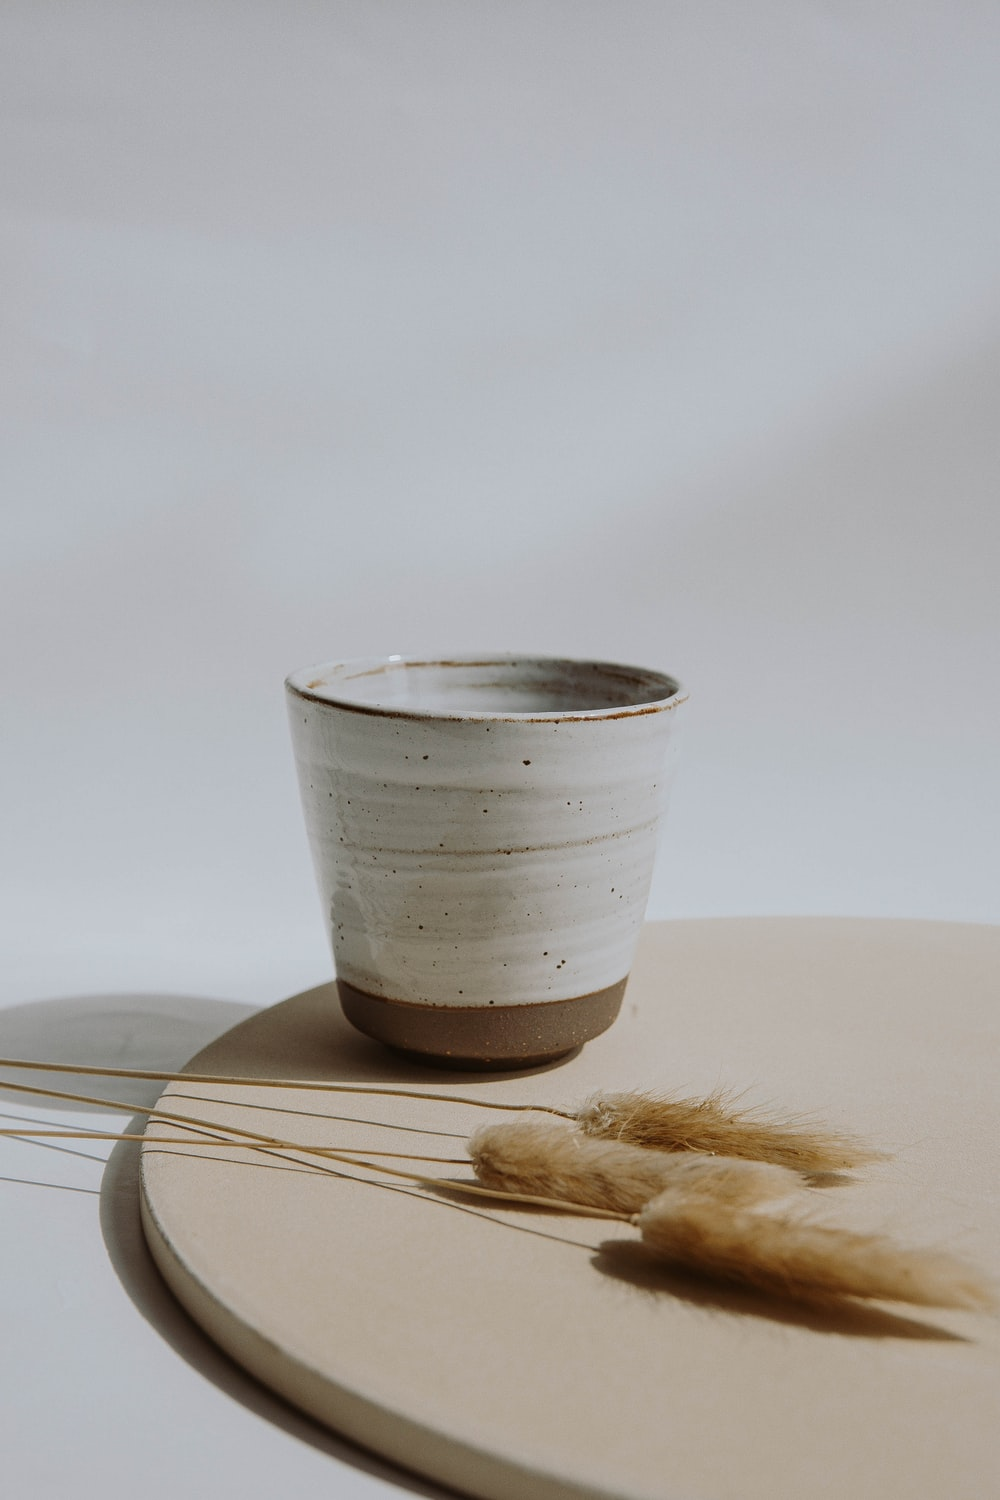 white and silver cup on brown wooden table